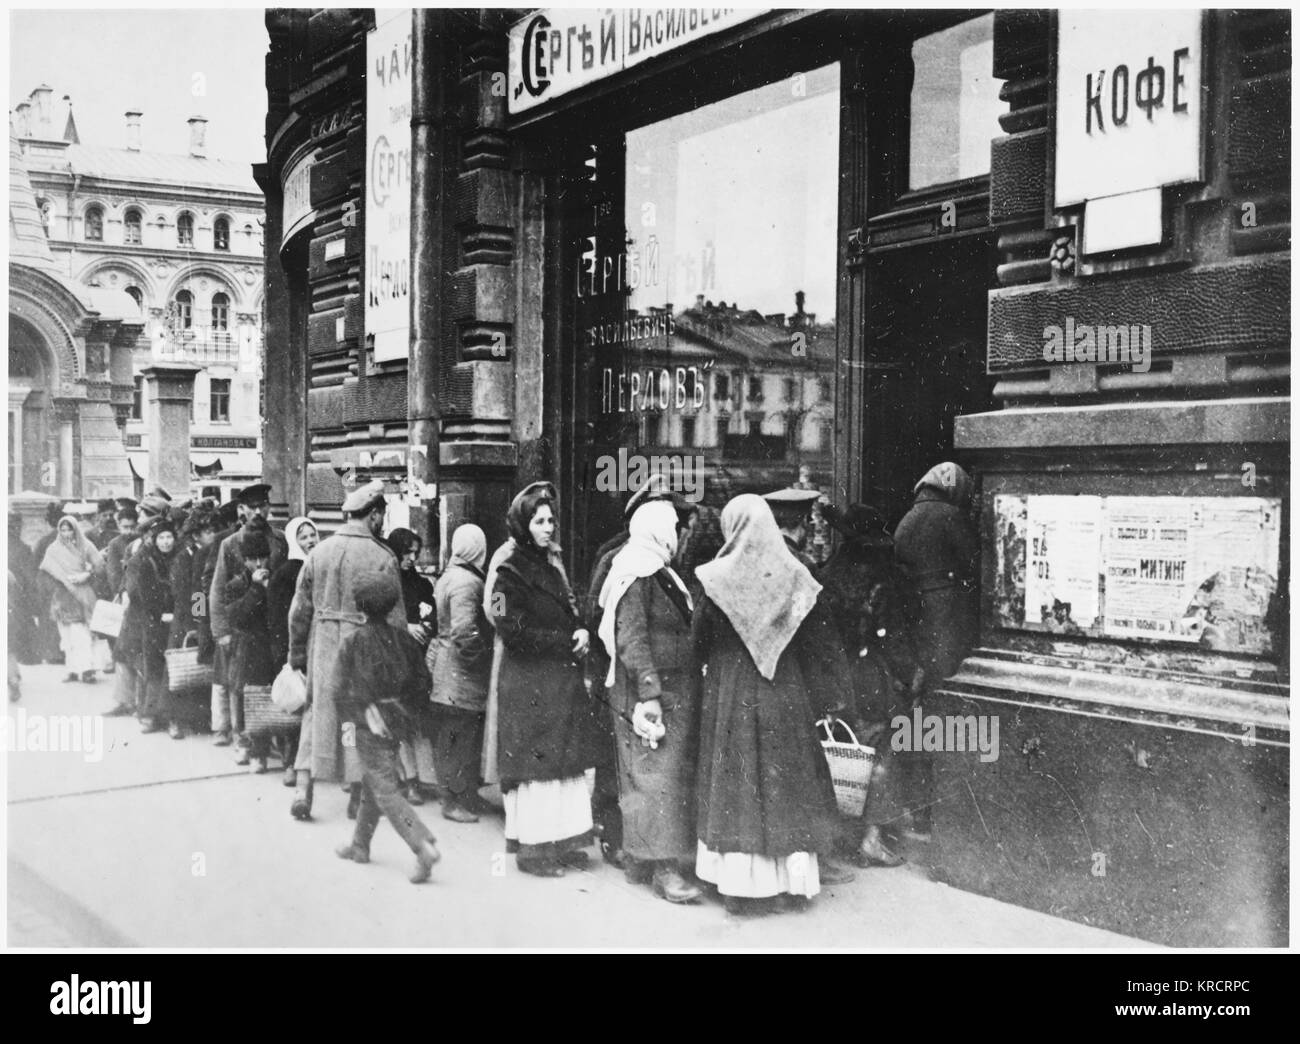 RUSSIAN REVOLUTION - Queueing for food, Tverskaya Street, Moscow. Date: SEPTEMBER 1917 - Stock Image